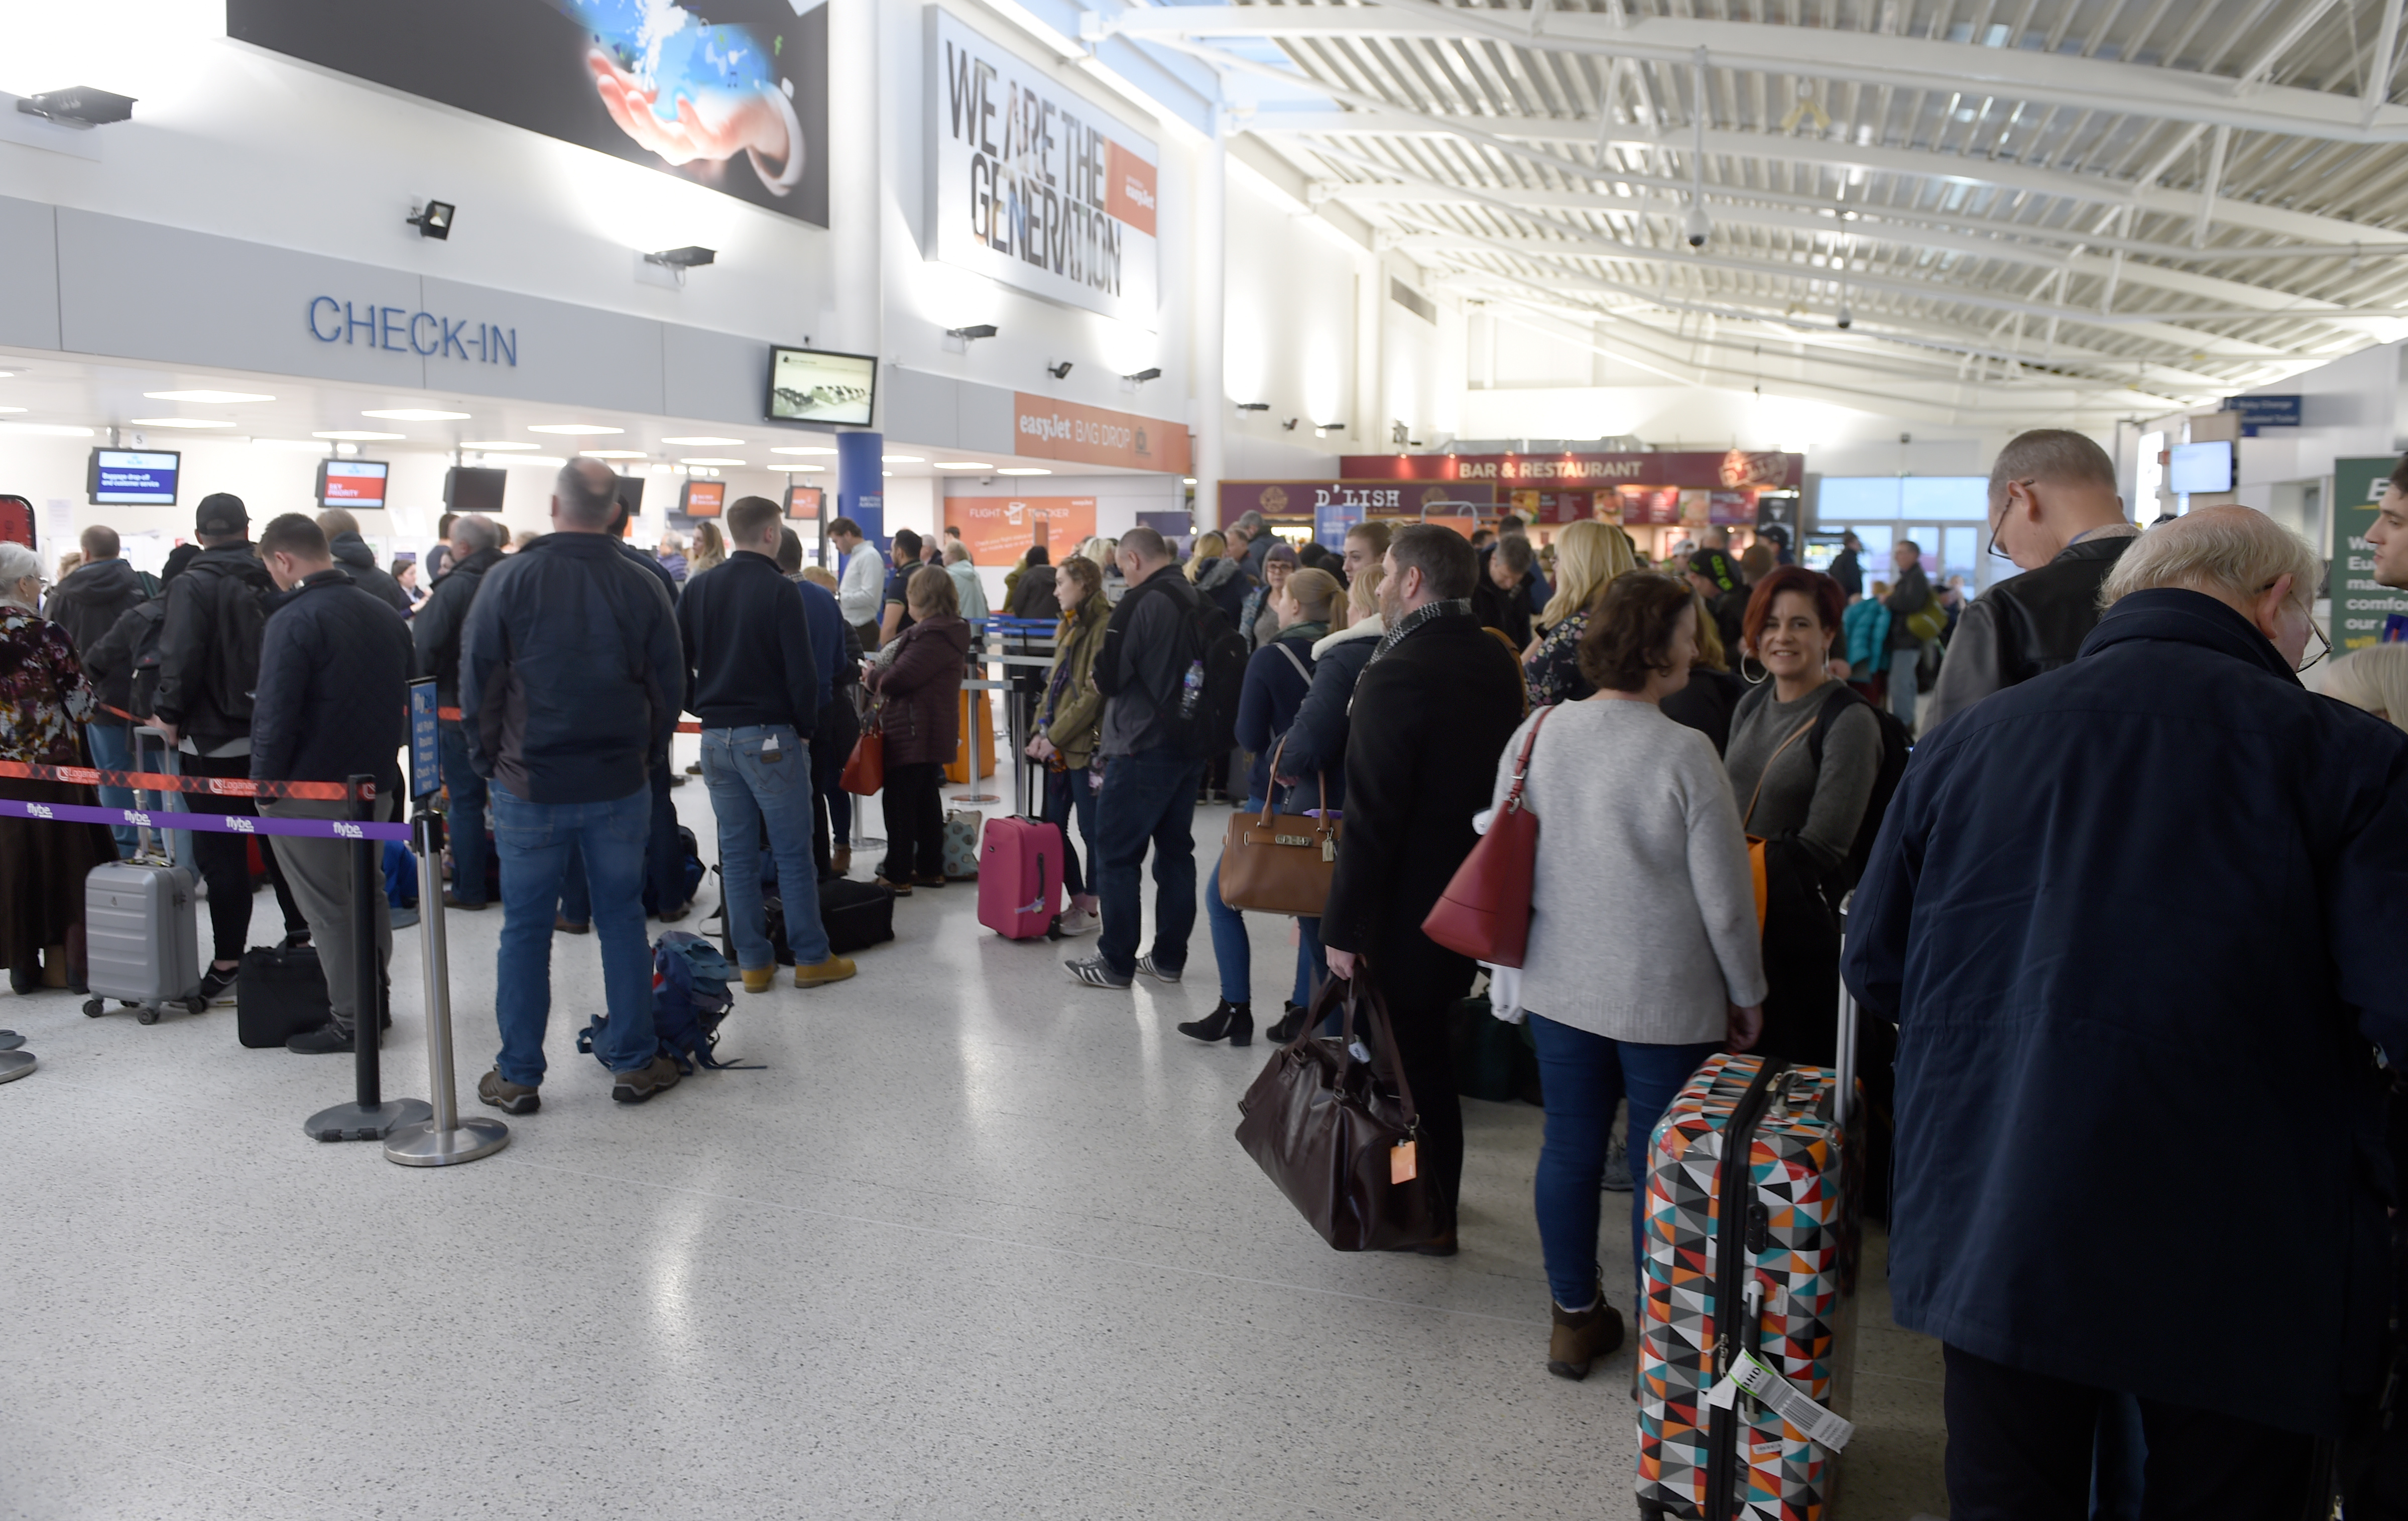 Inverness Airort was badly affected by fog yesterday afternoon with many flights cancelled or delayed.